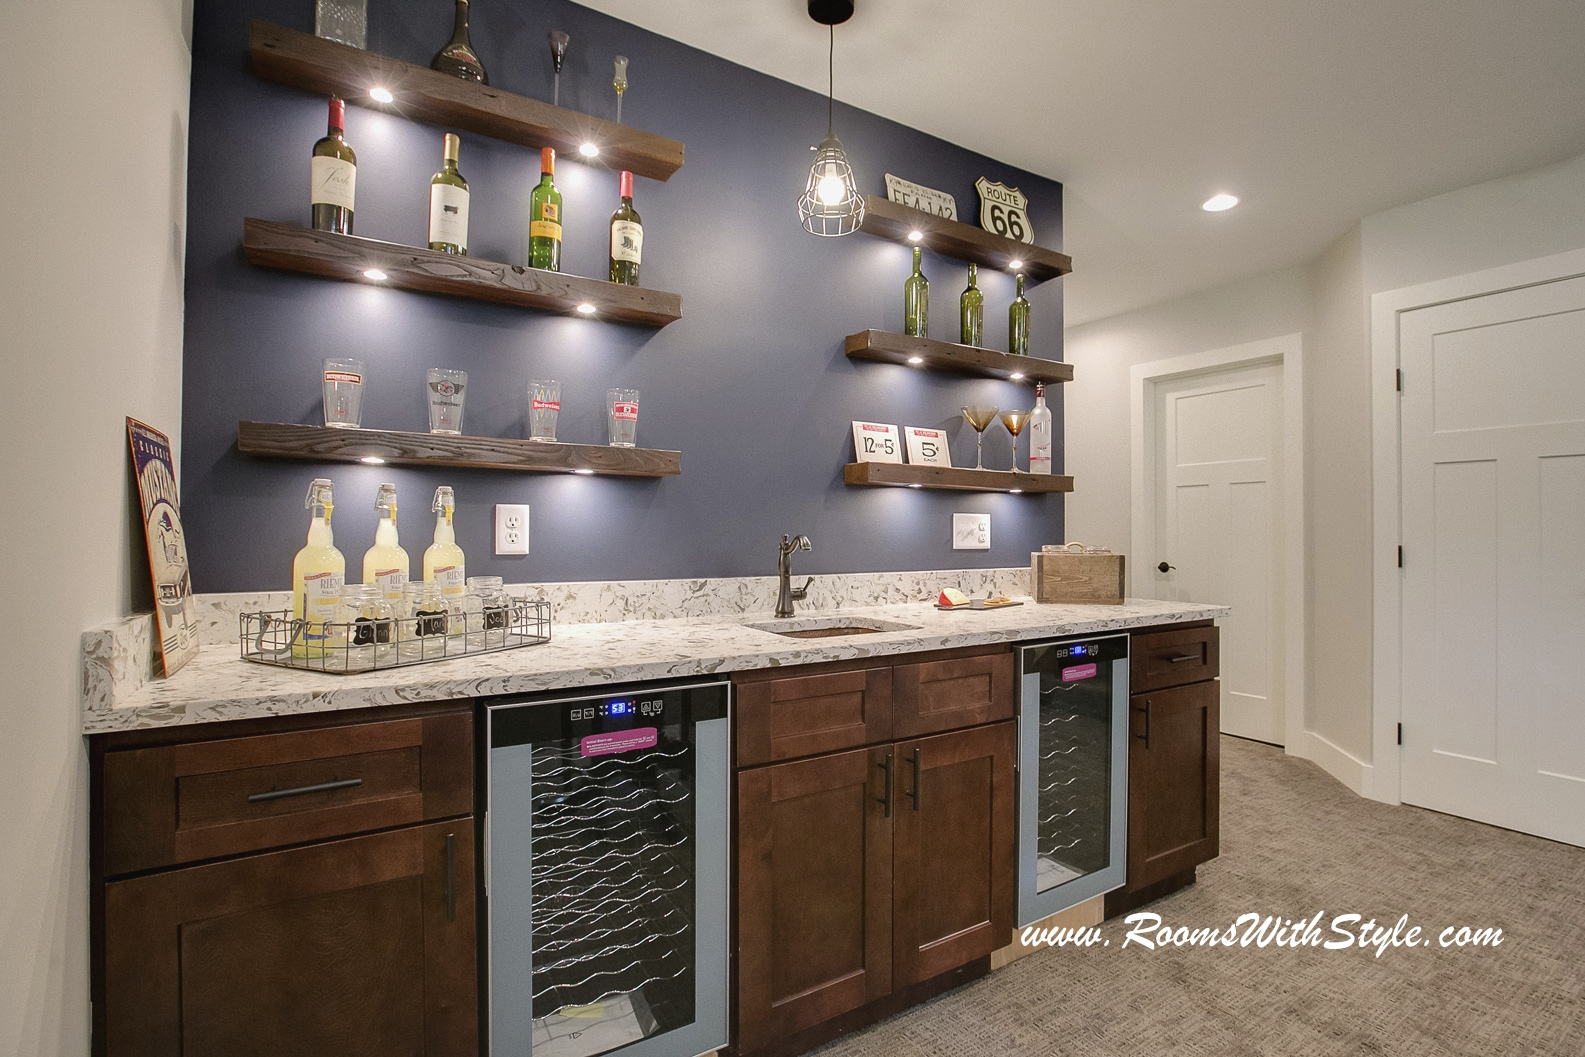 what you think floating shelves homesmsp behind bar this home used above area with dark navy accent wall them the combination creates wow factor for family room and sneaker rack